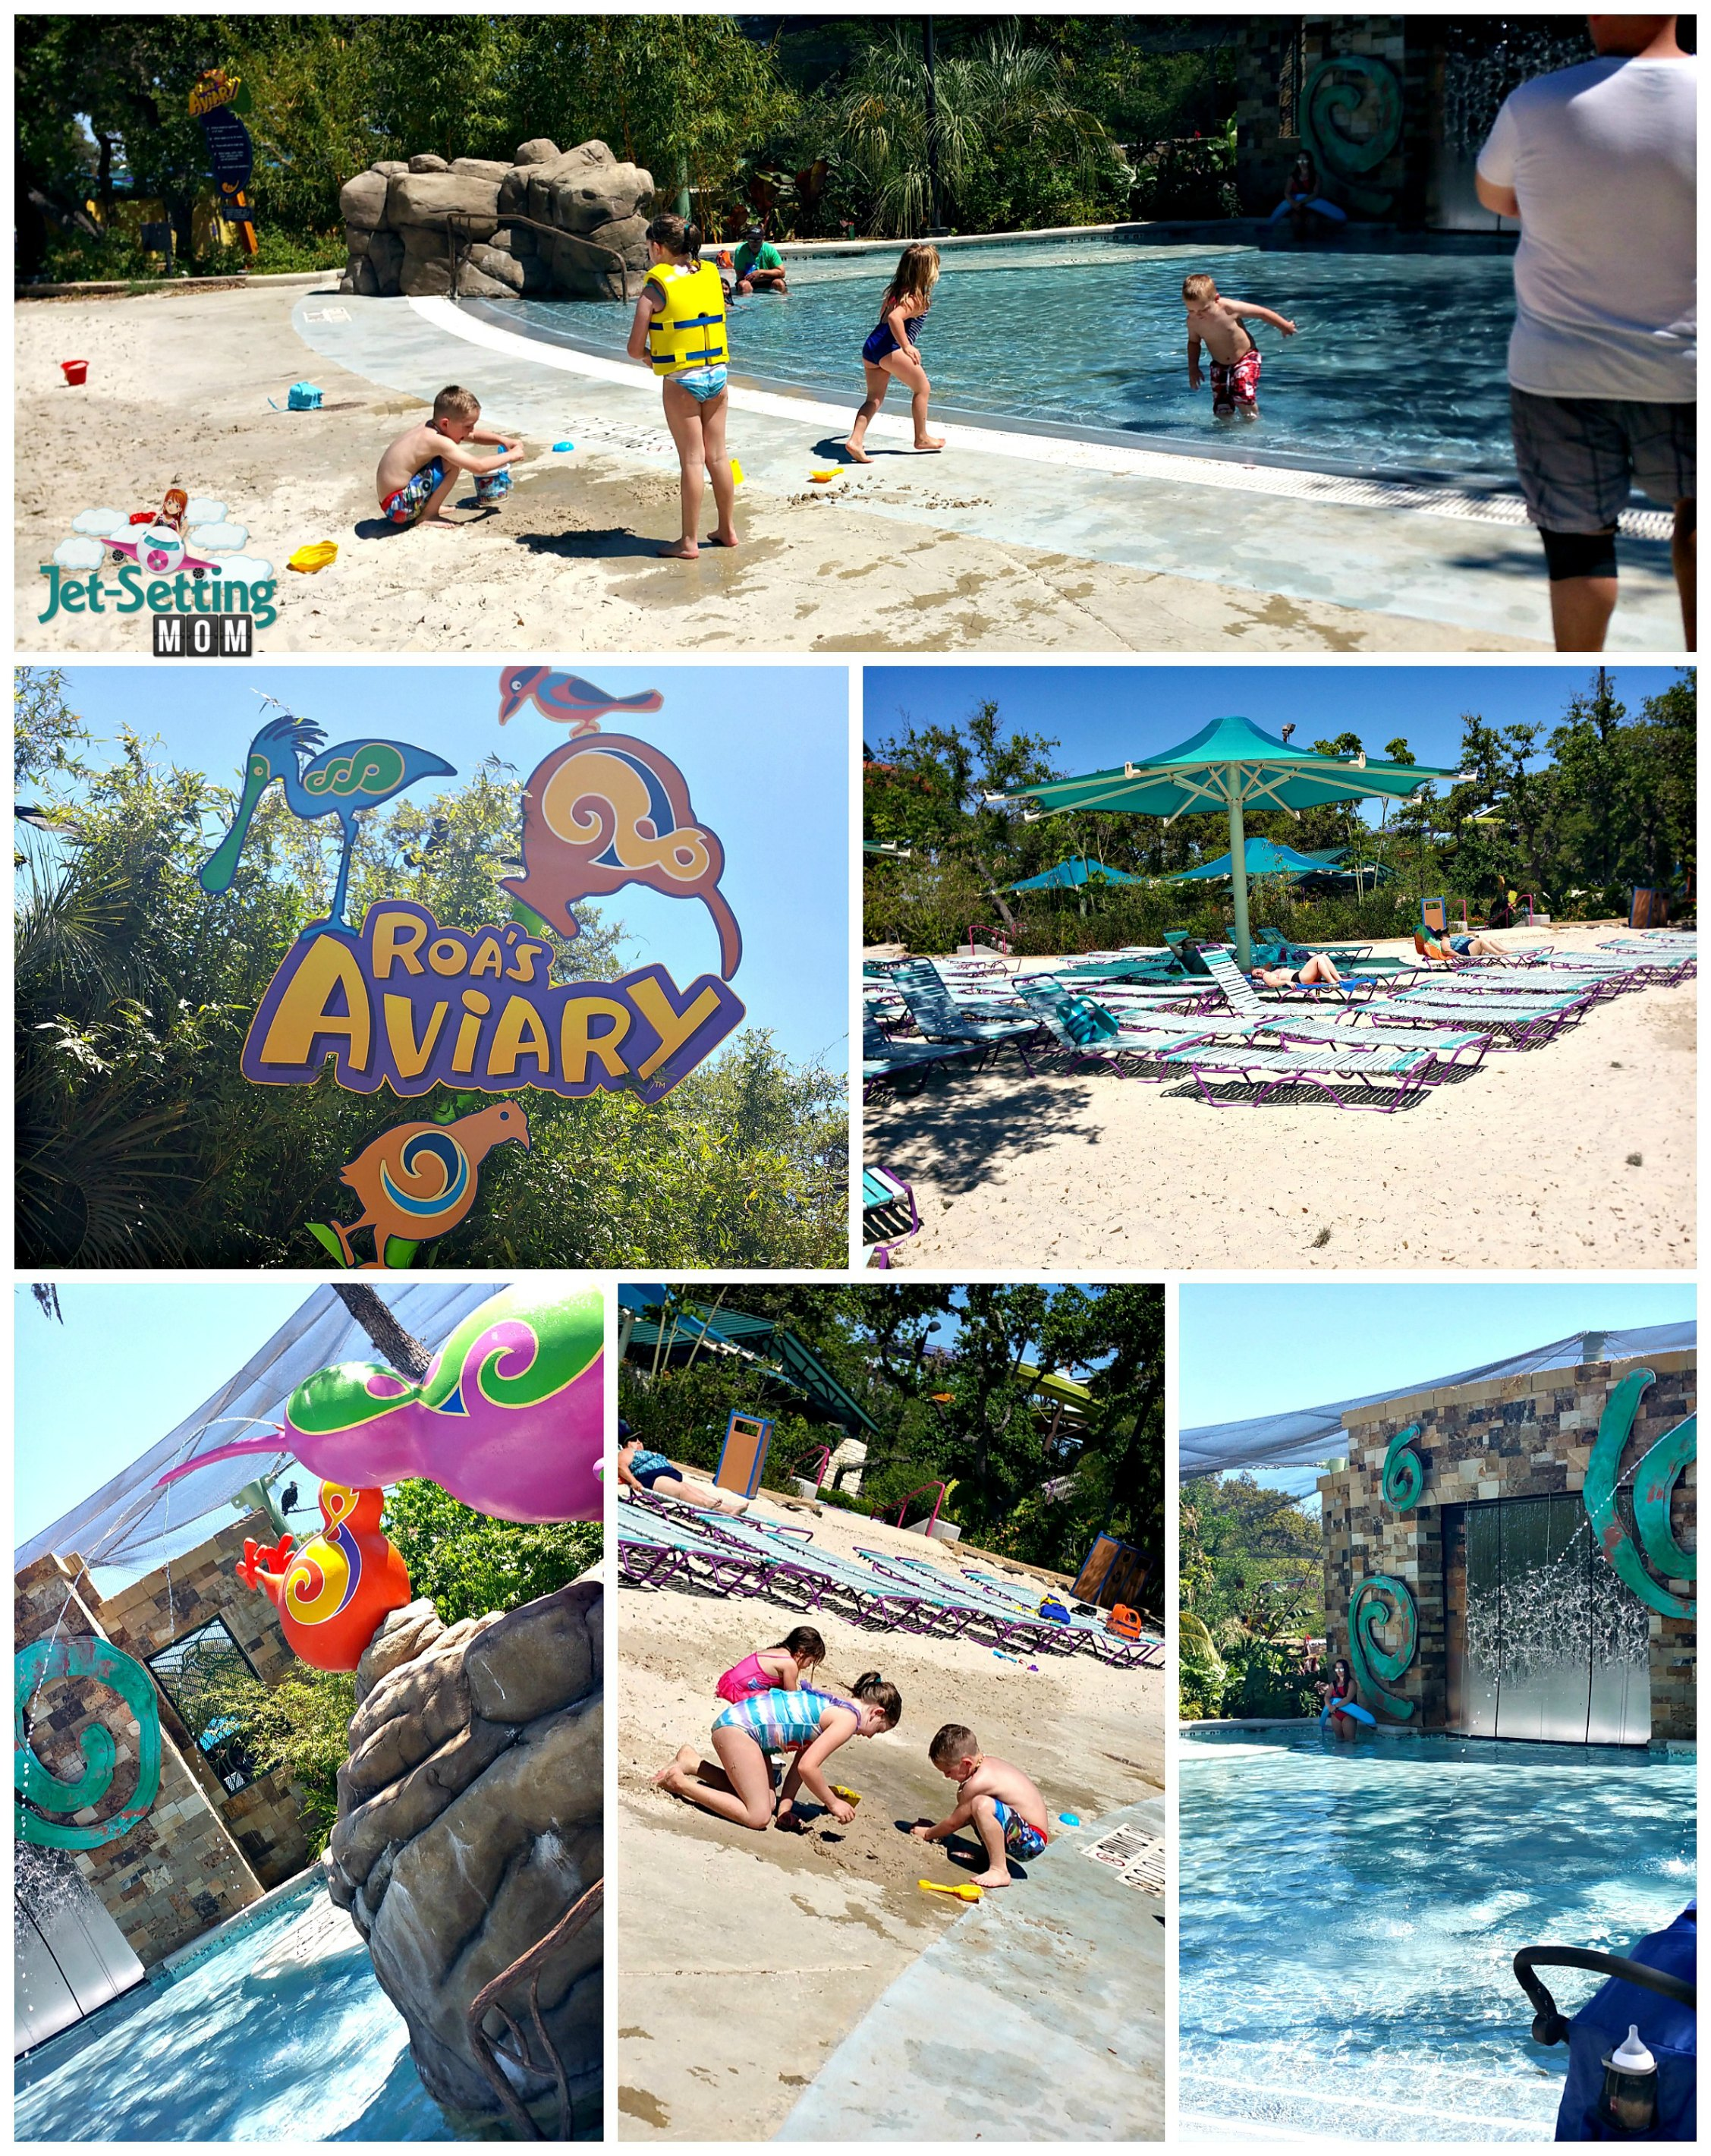 Roa's Aviary offers lots of great interactive play for kids at Aquatica, SeaWorld TX